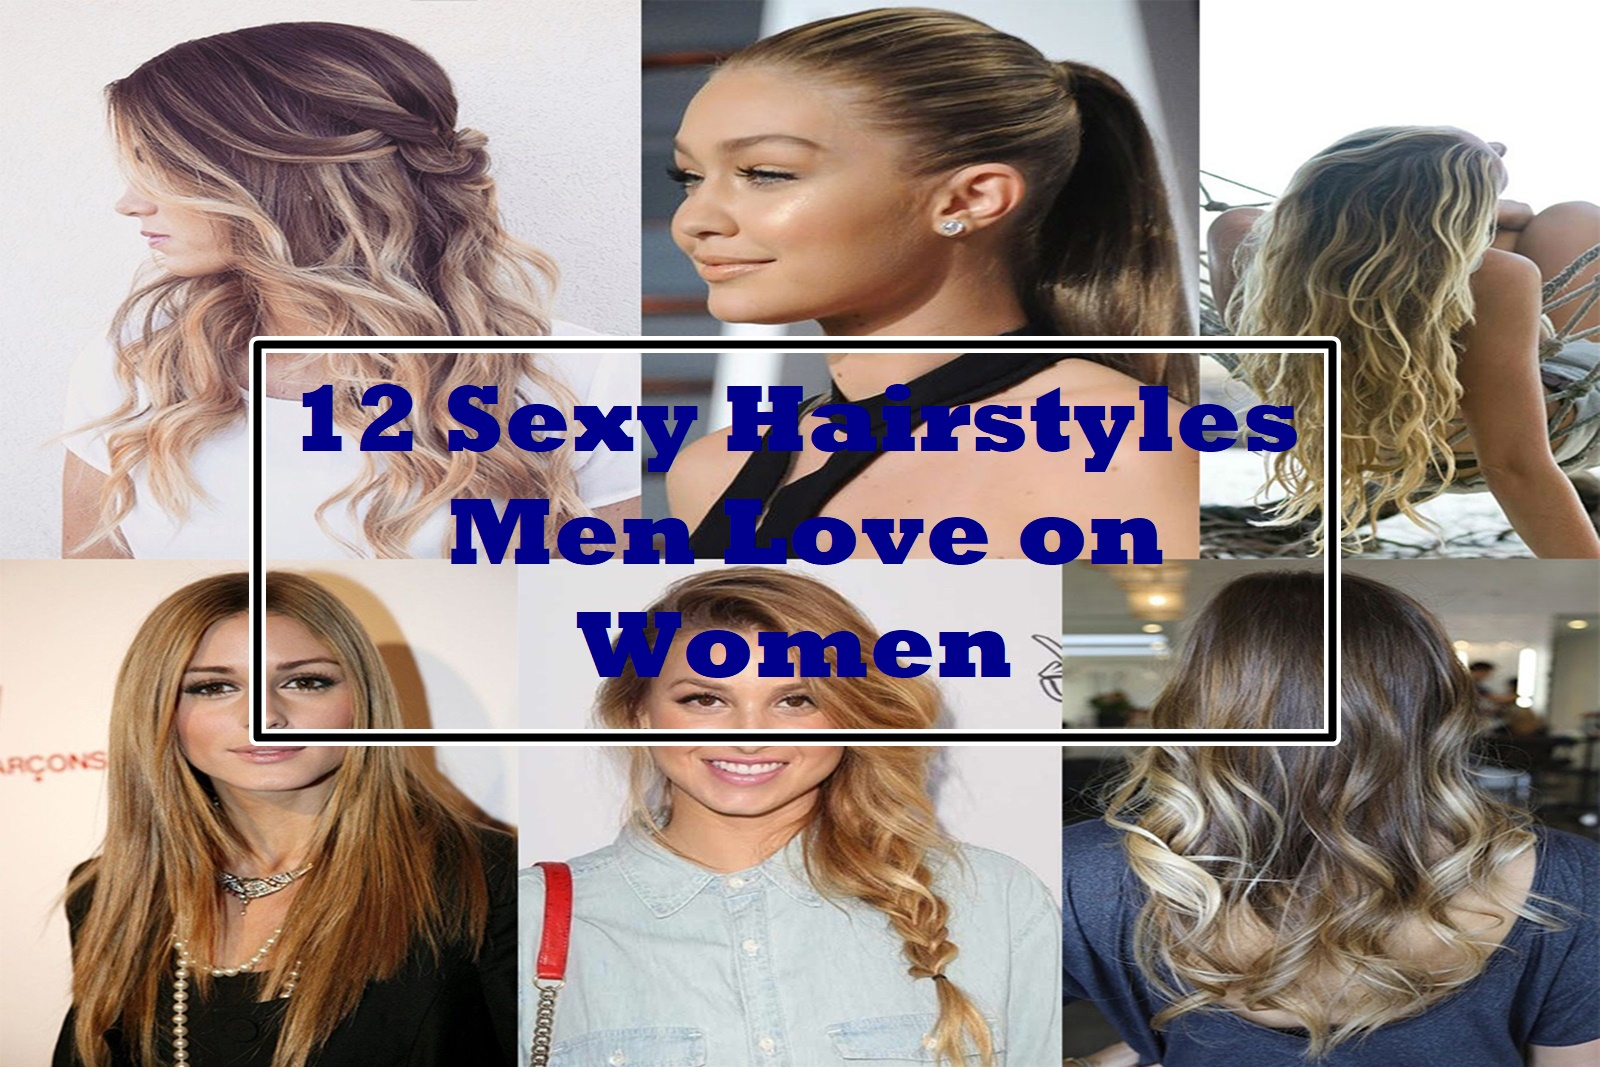 12 Sexy Hairstyles men love on women